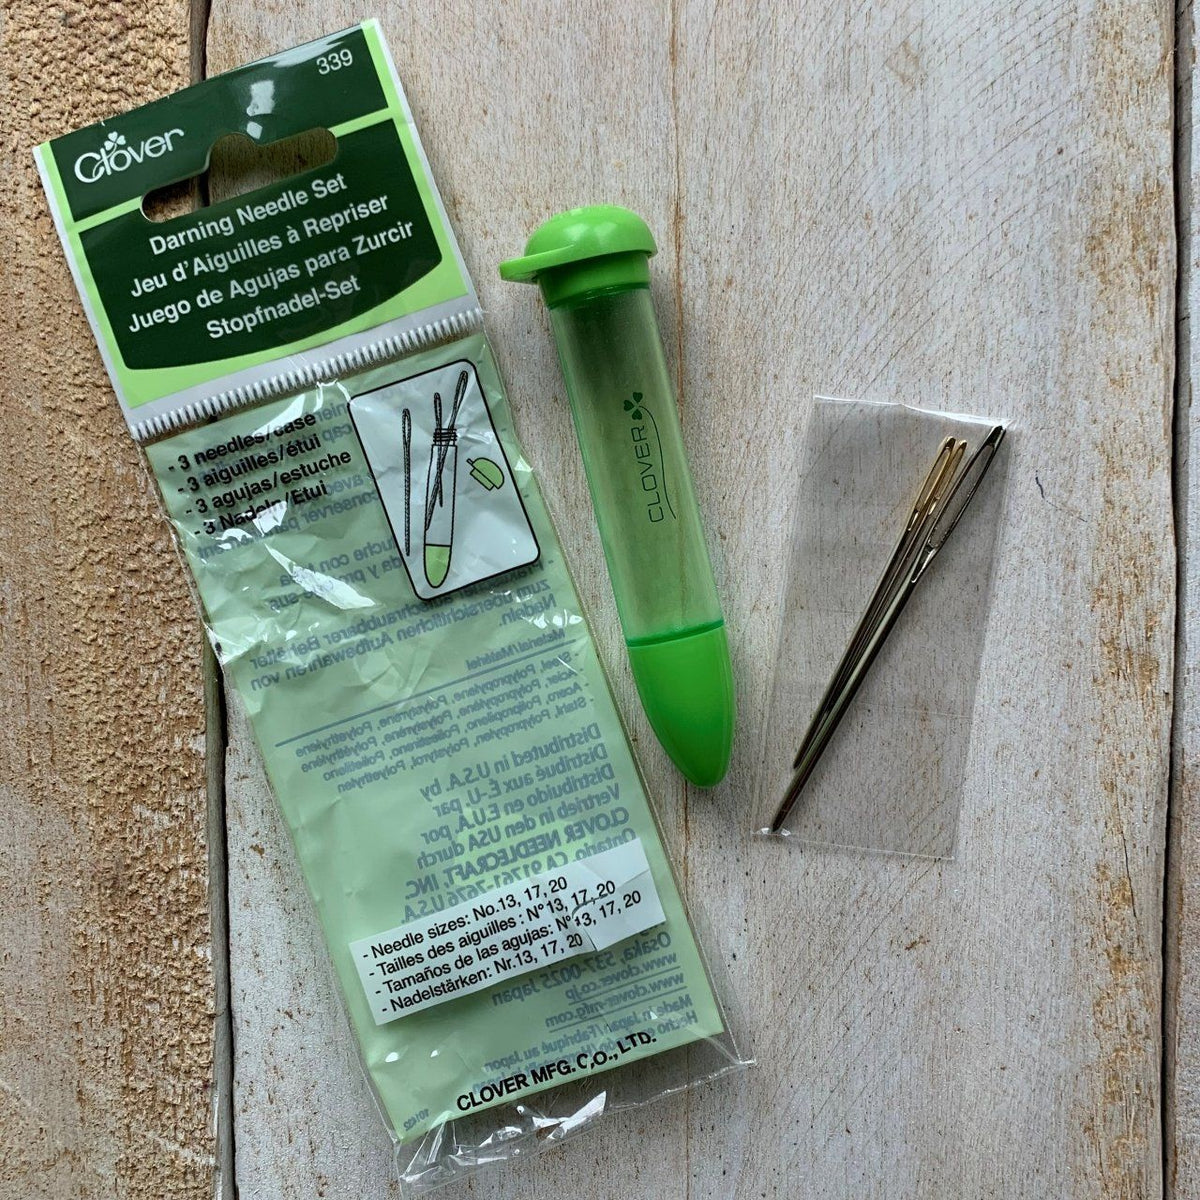 CLOVER - 3 Darning Needle Sets